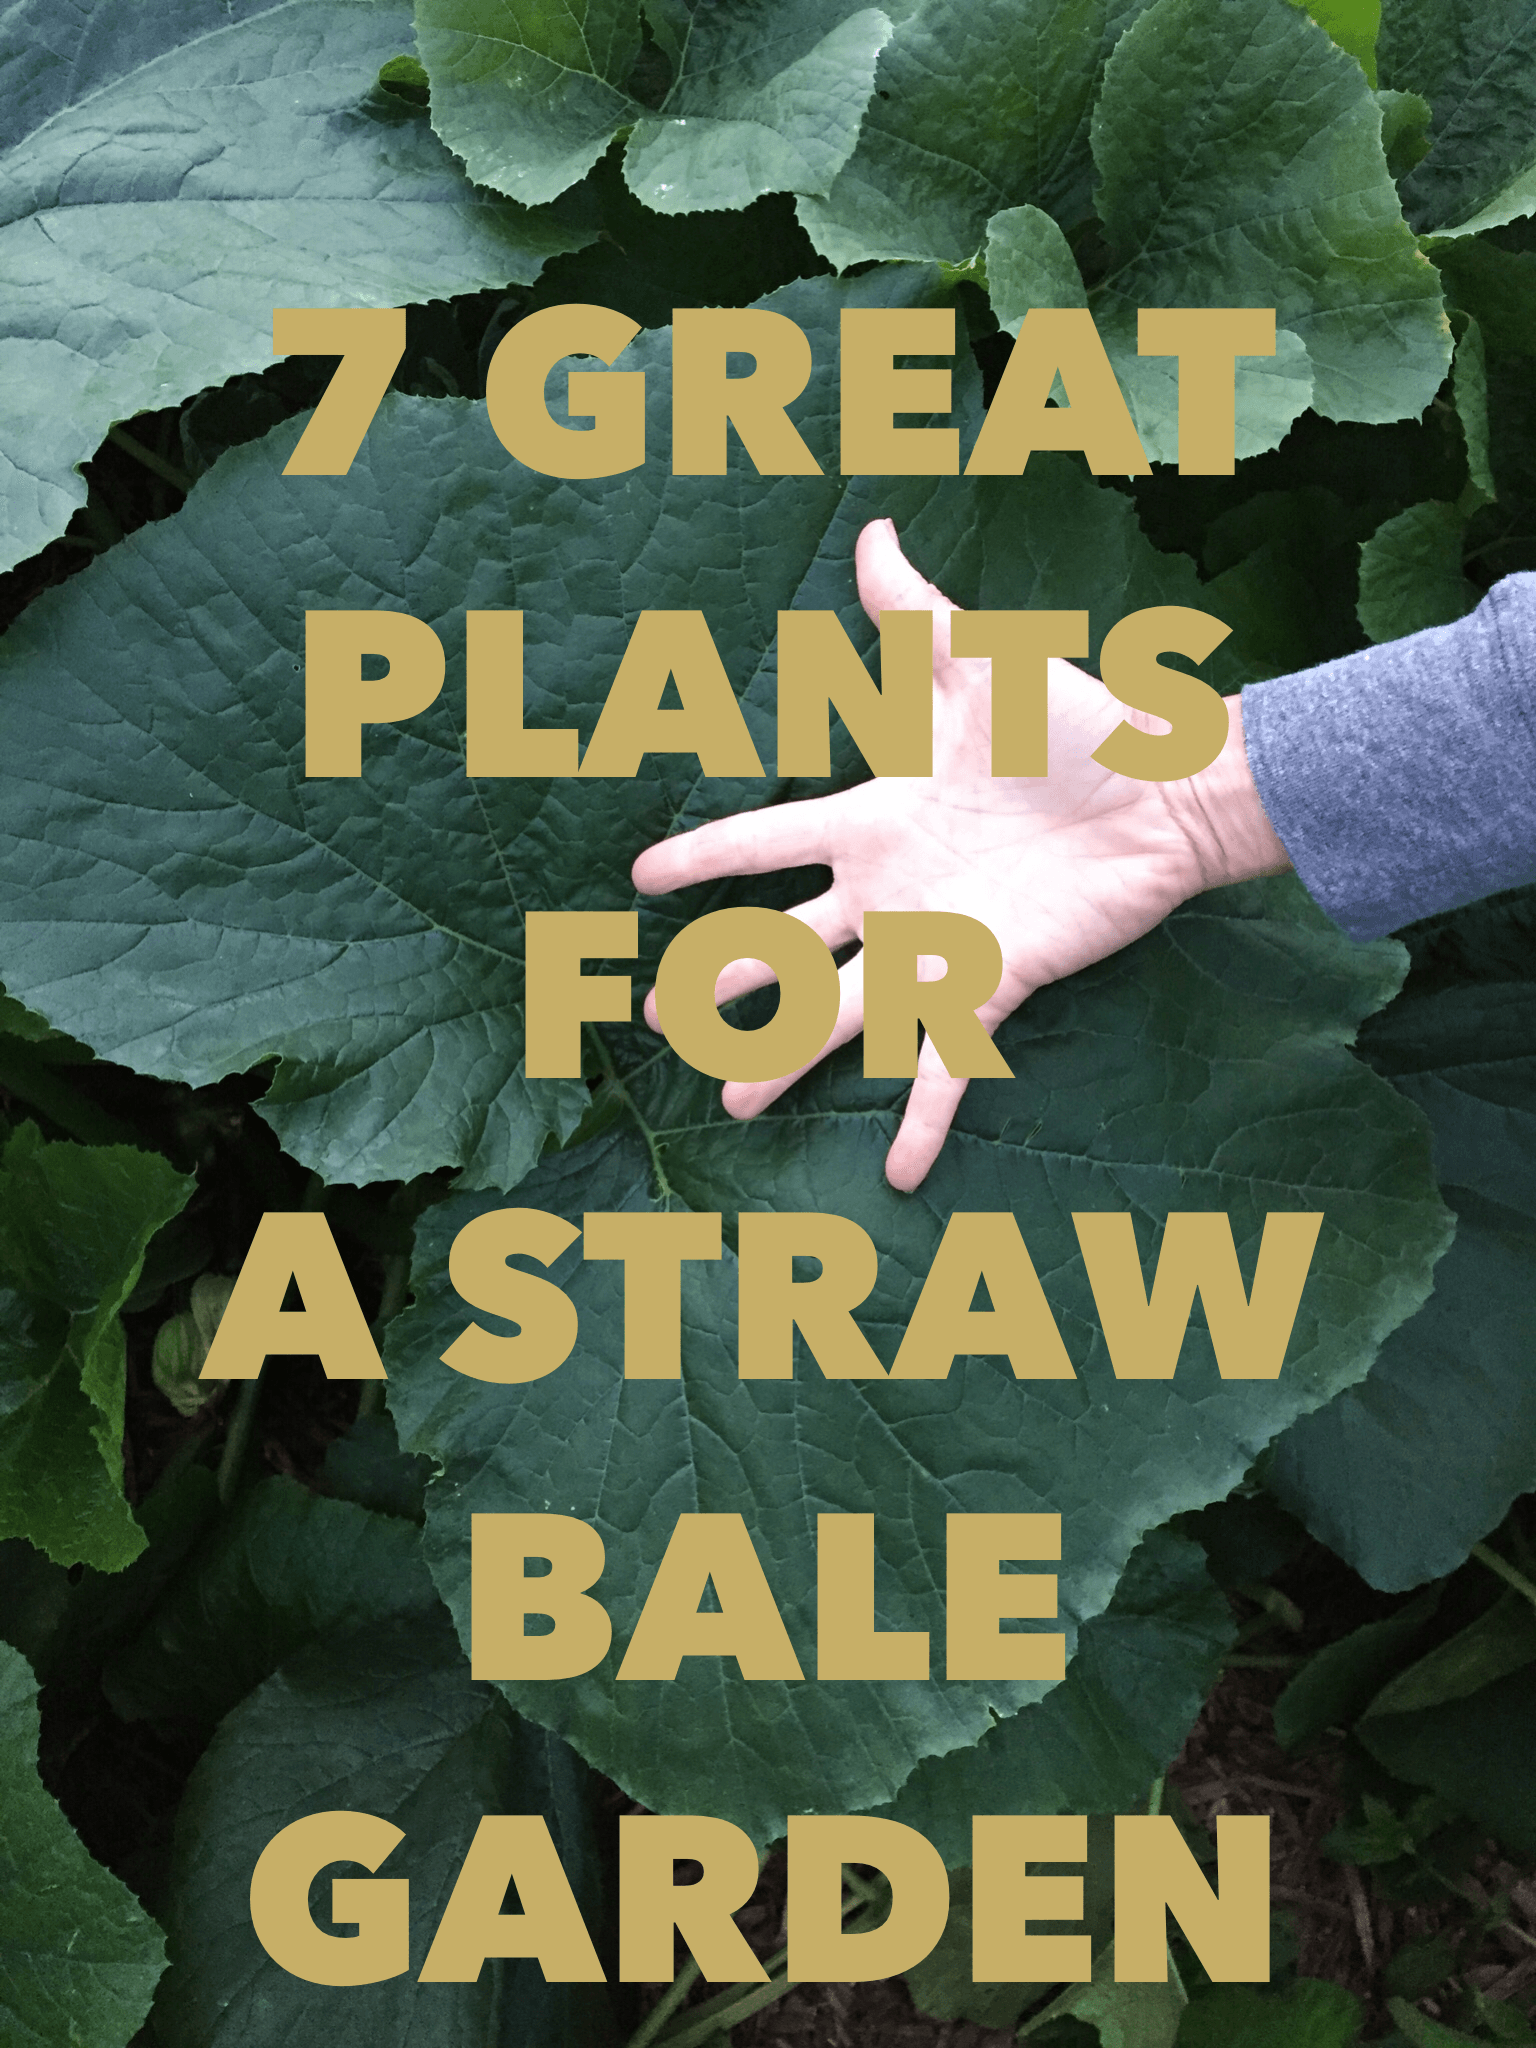 7 great plants for a straw bale garden from the garden to the table recipes for life straw for Best plants for straw bale gardening